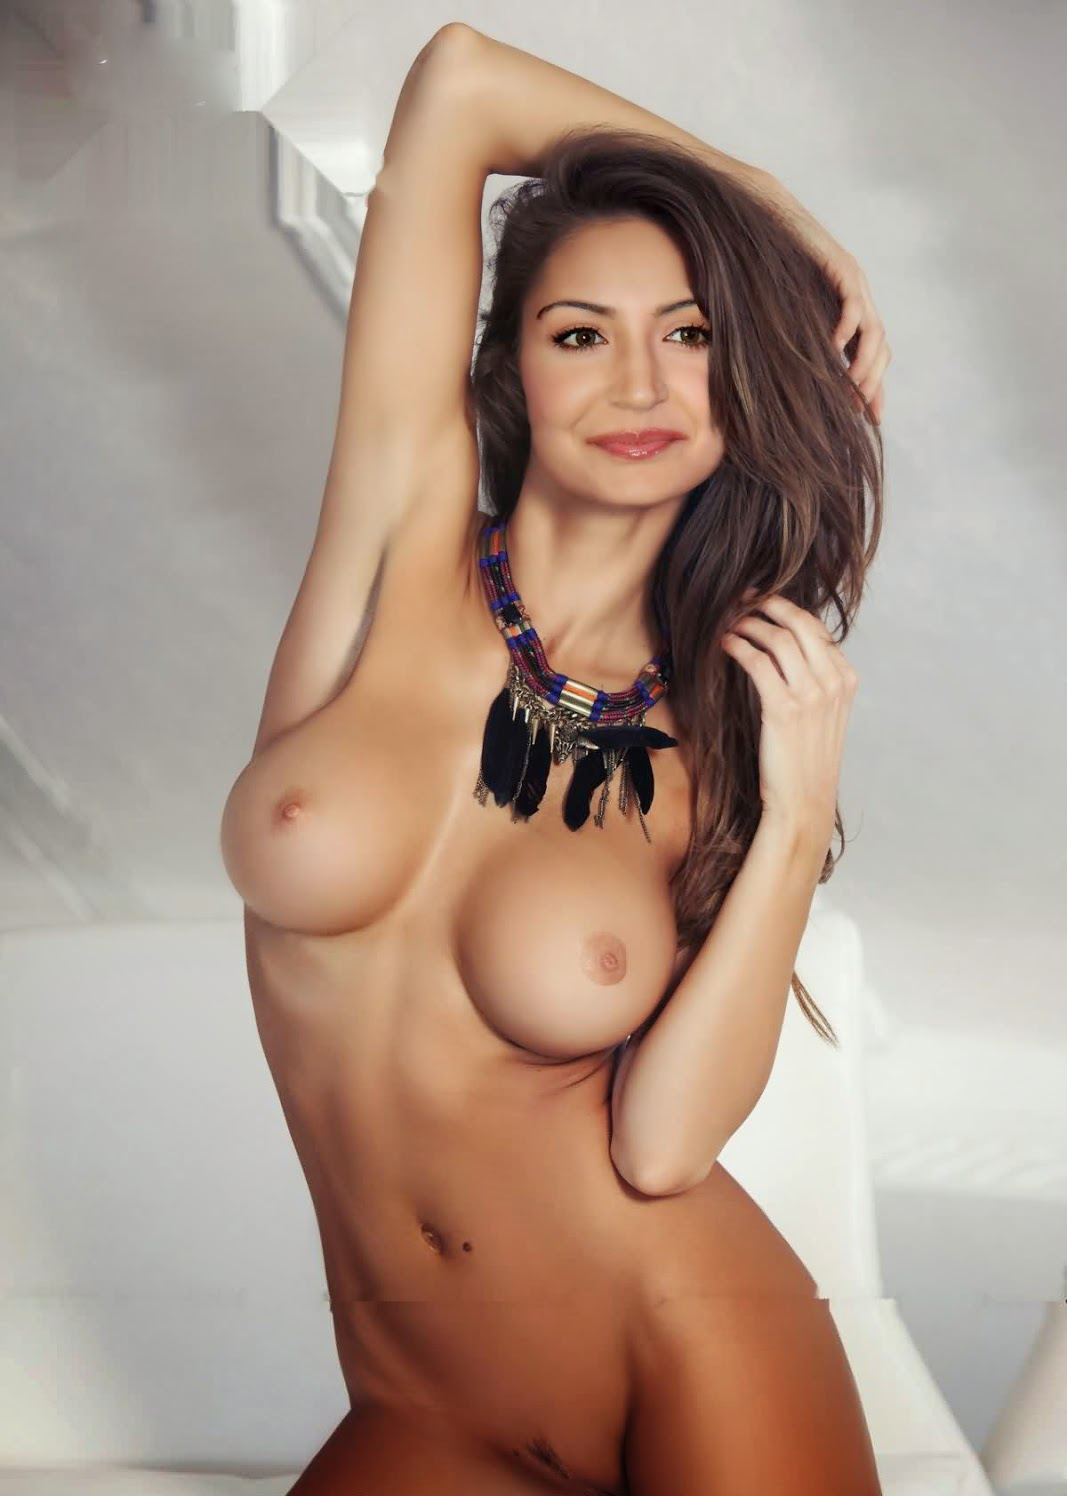 The expert, anuska sorma boobs fuck sex photos seems